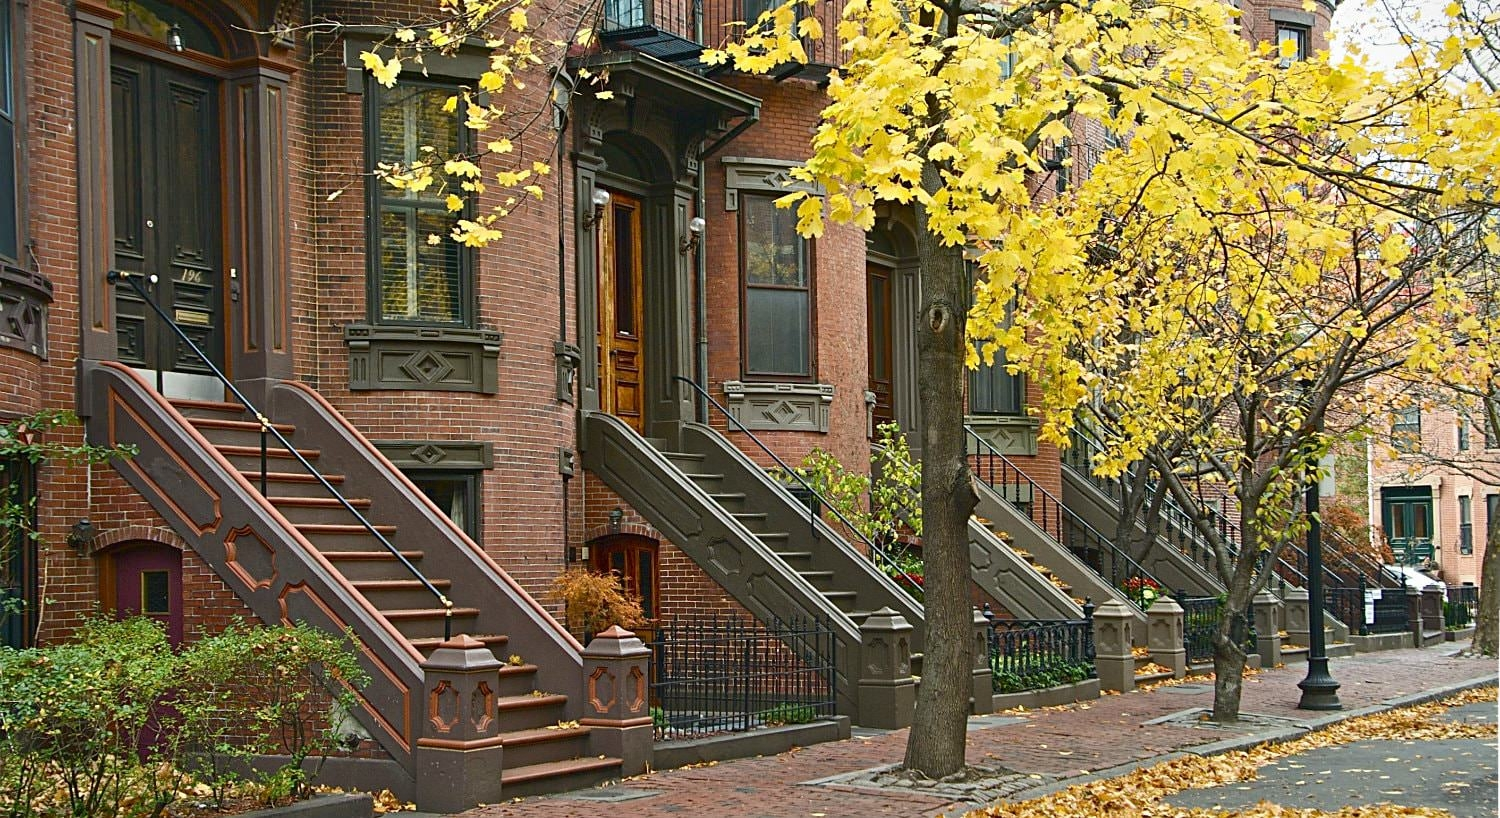 Autumn yellow tree-lined sidewalk in front of reddish brown brick brownstones